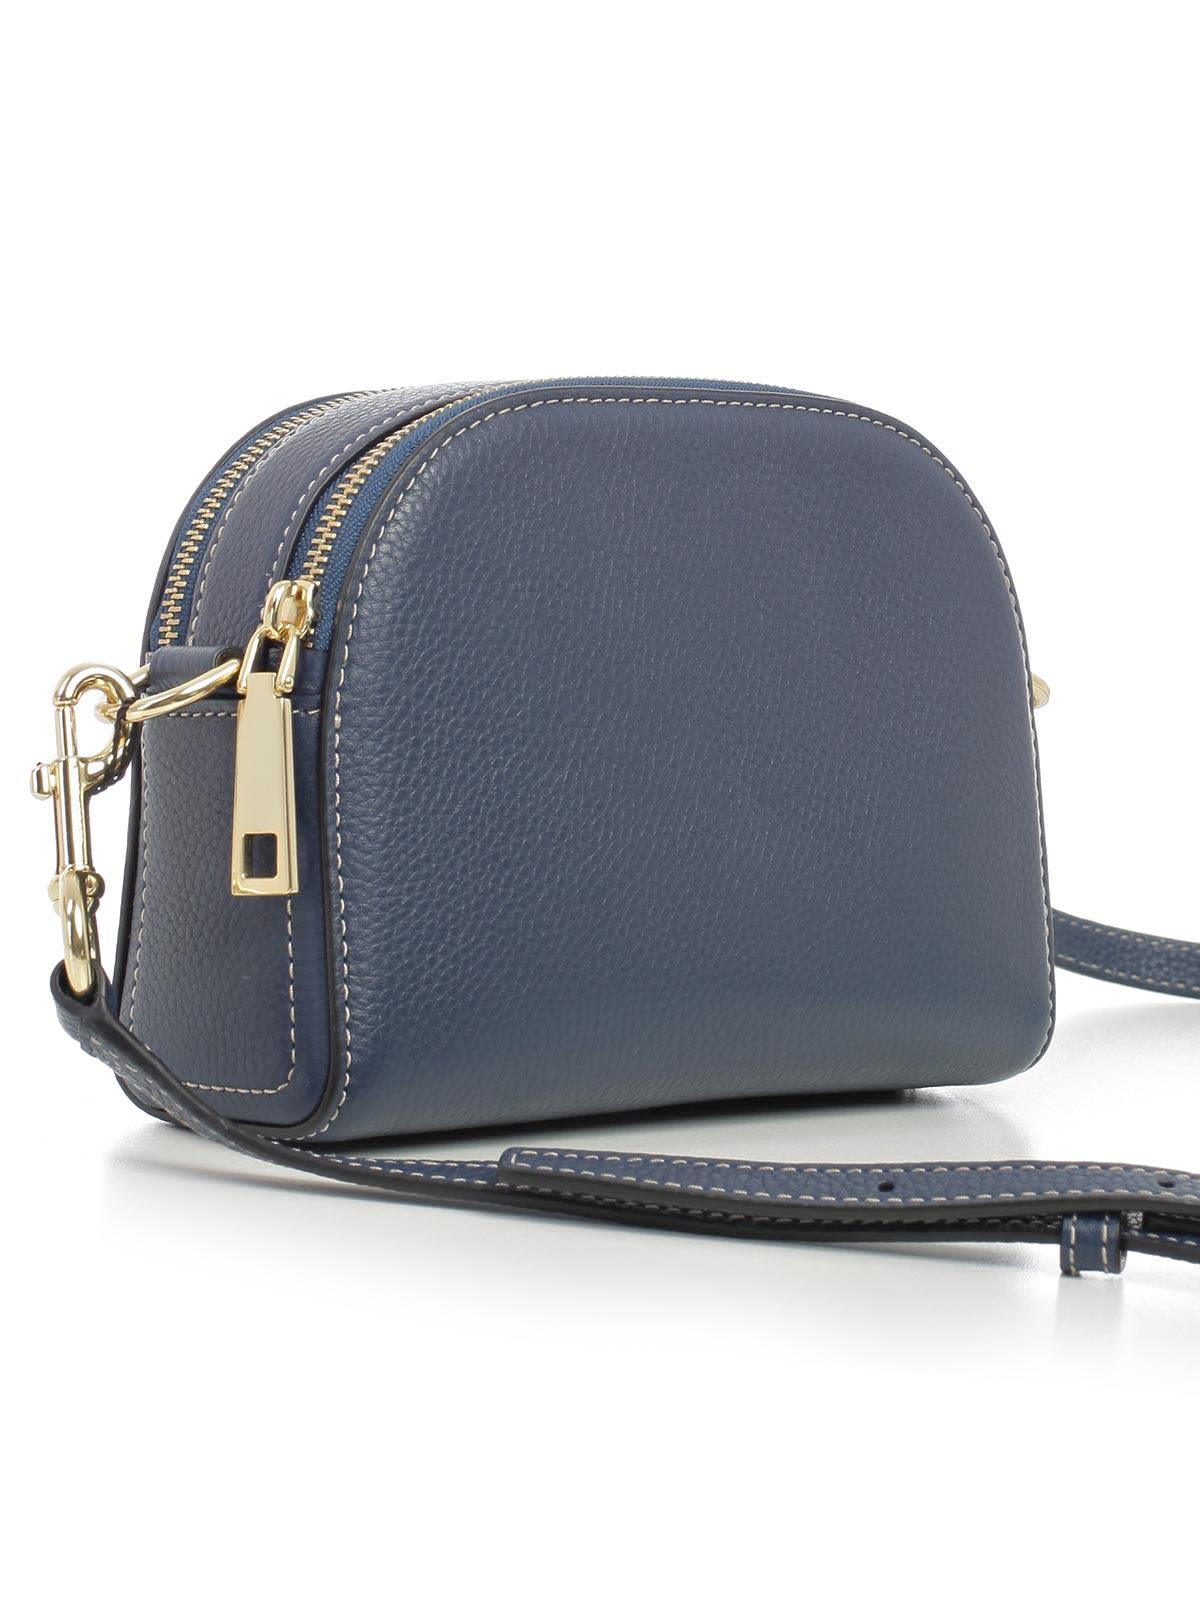 Marc Jacobs Bag In Blue Sea